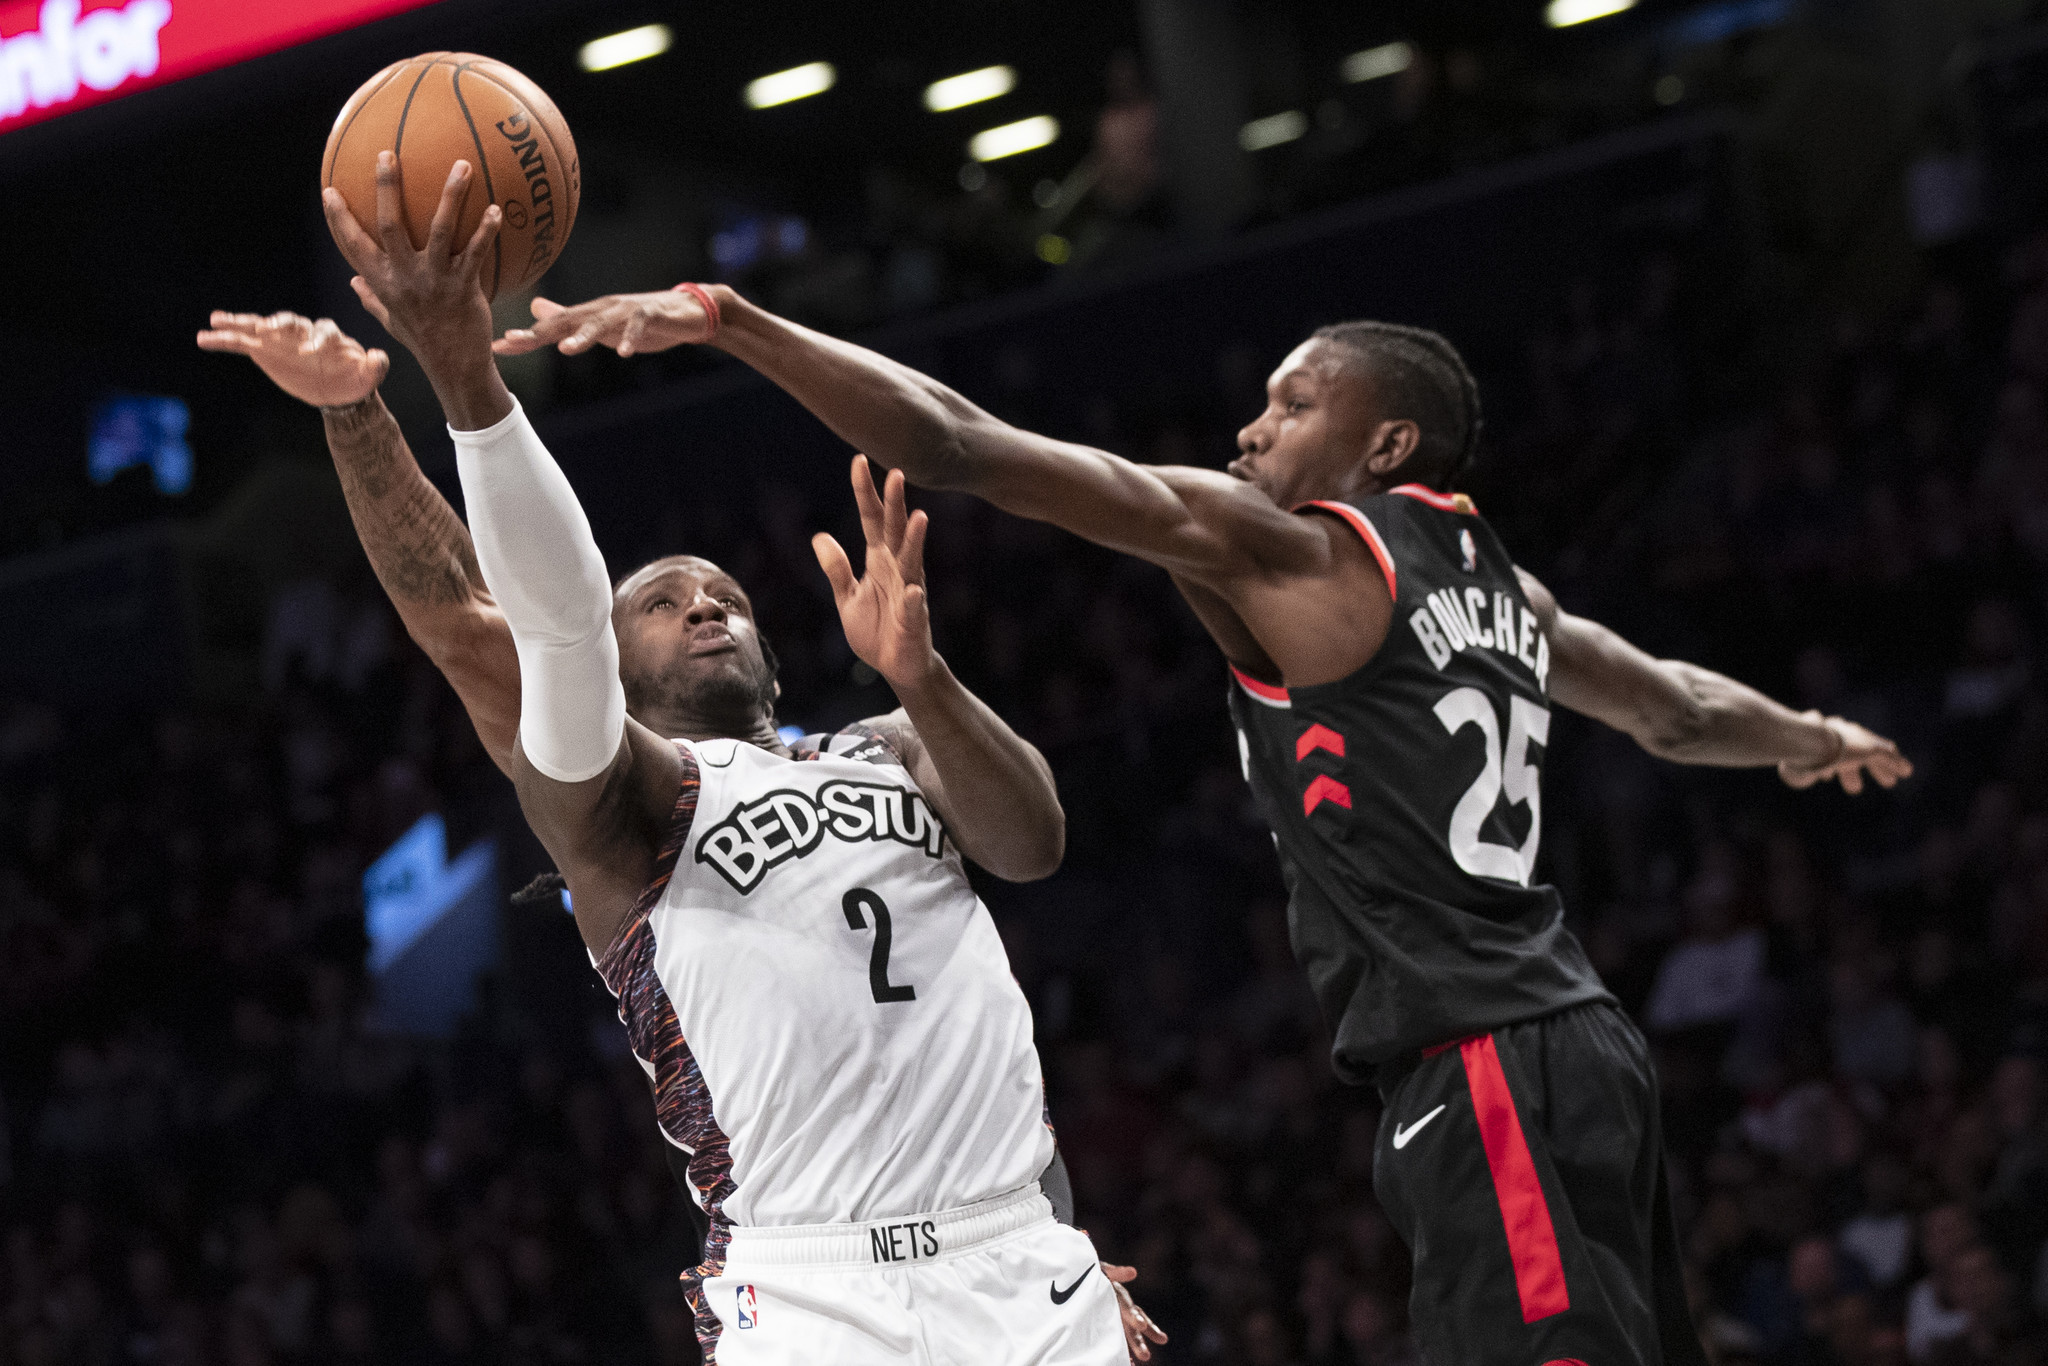 Nets' clash against Raptors will be anything but easy